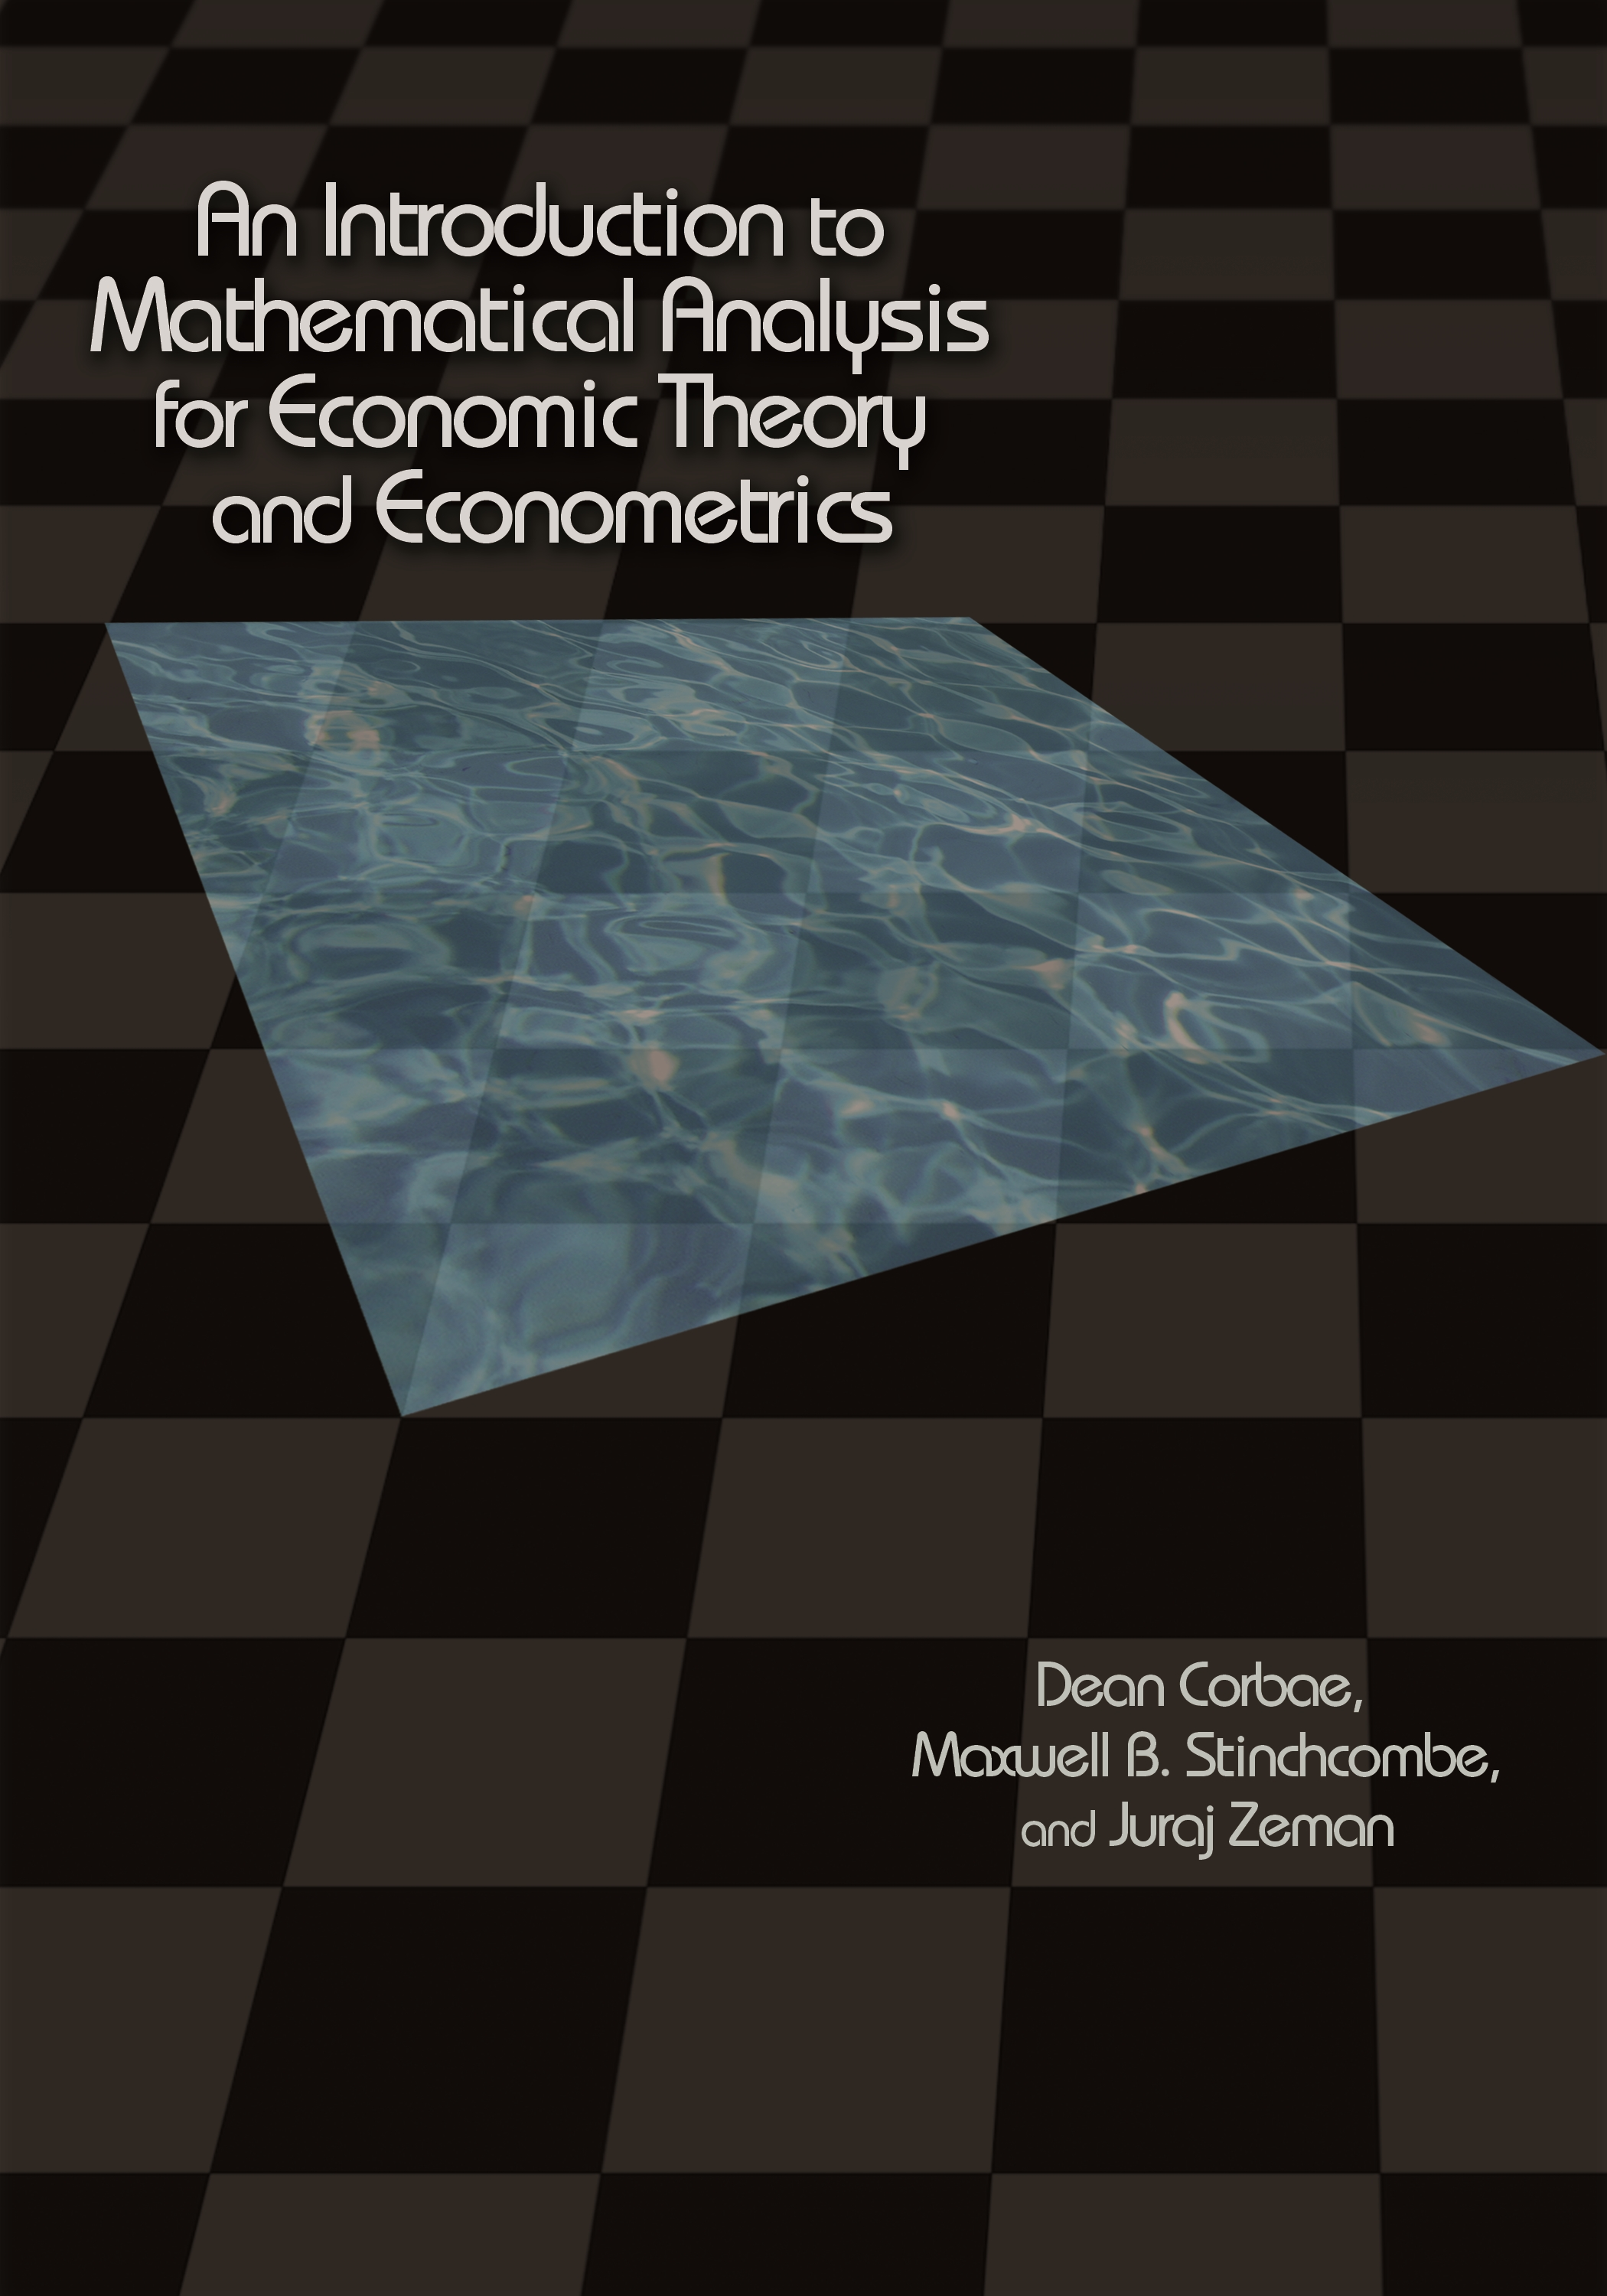 Download Ebook An Introduction to Mathematical Analysis for Economic Theory and Econometrics by Dean Corbae Pdf